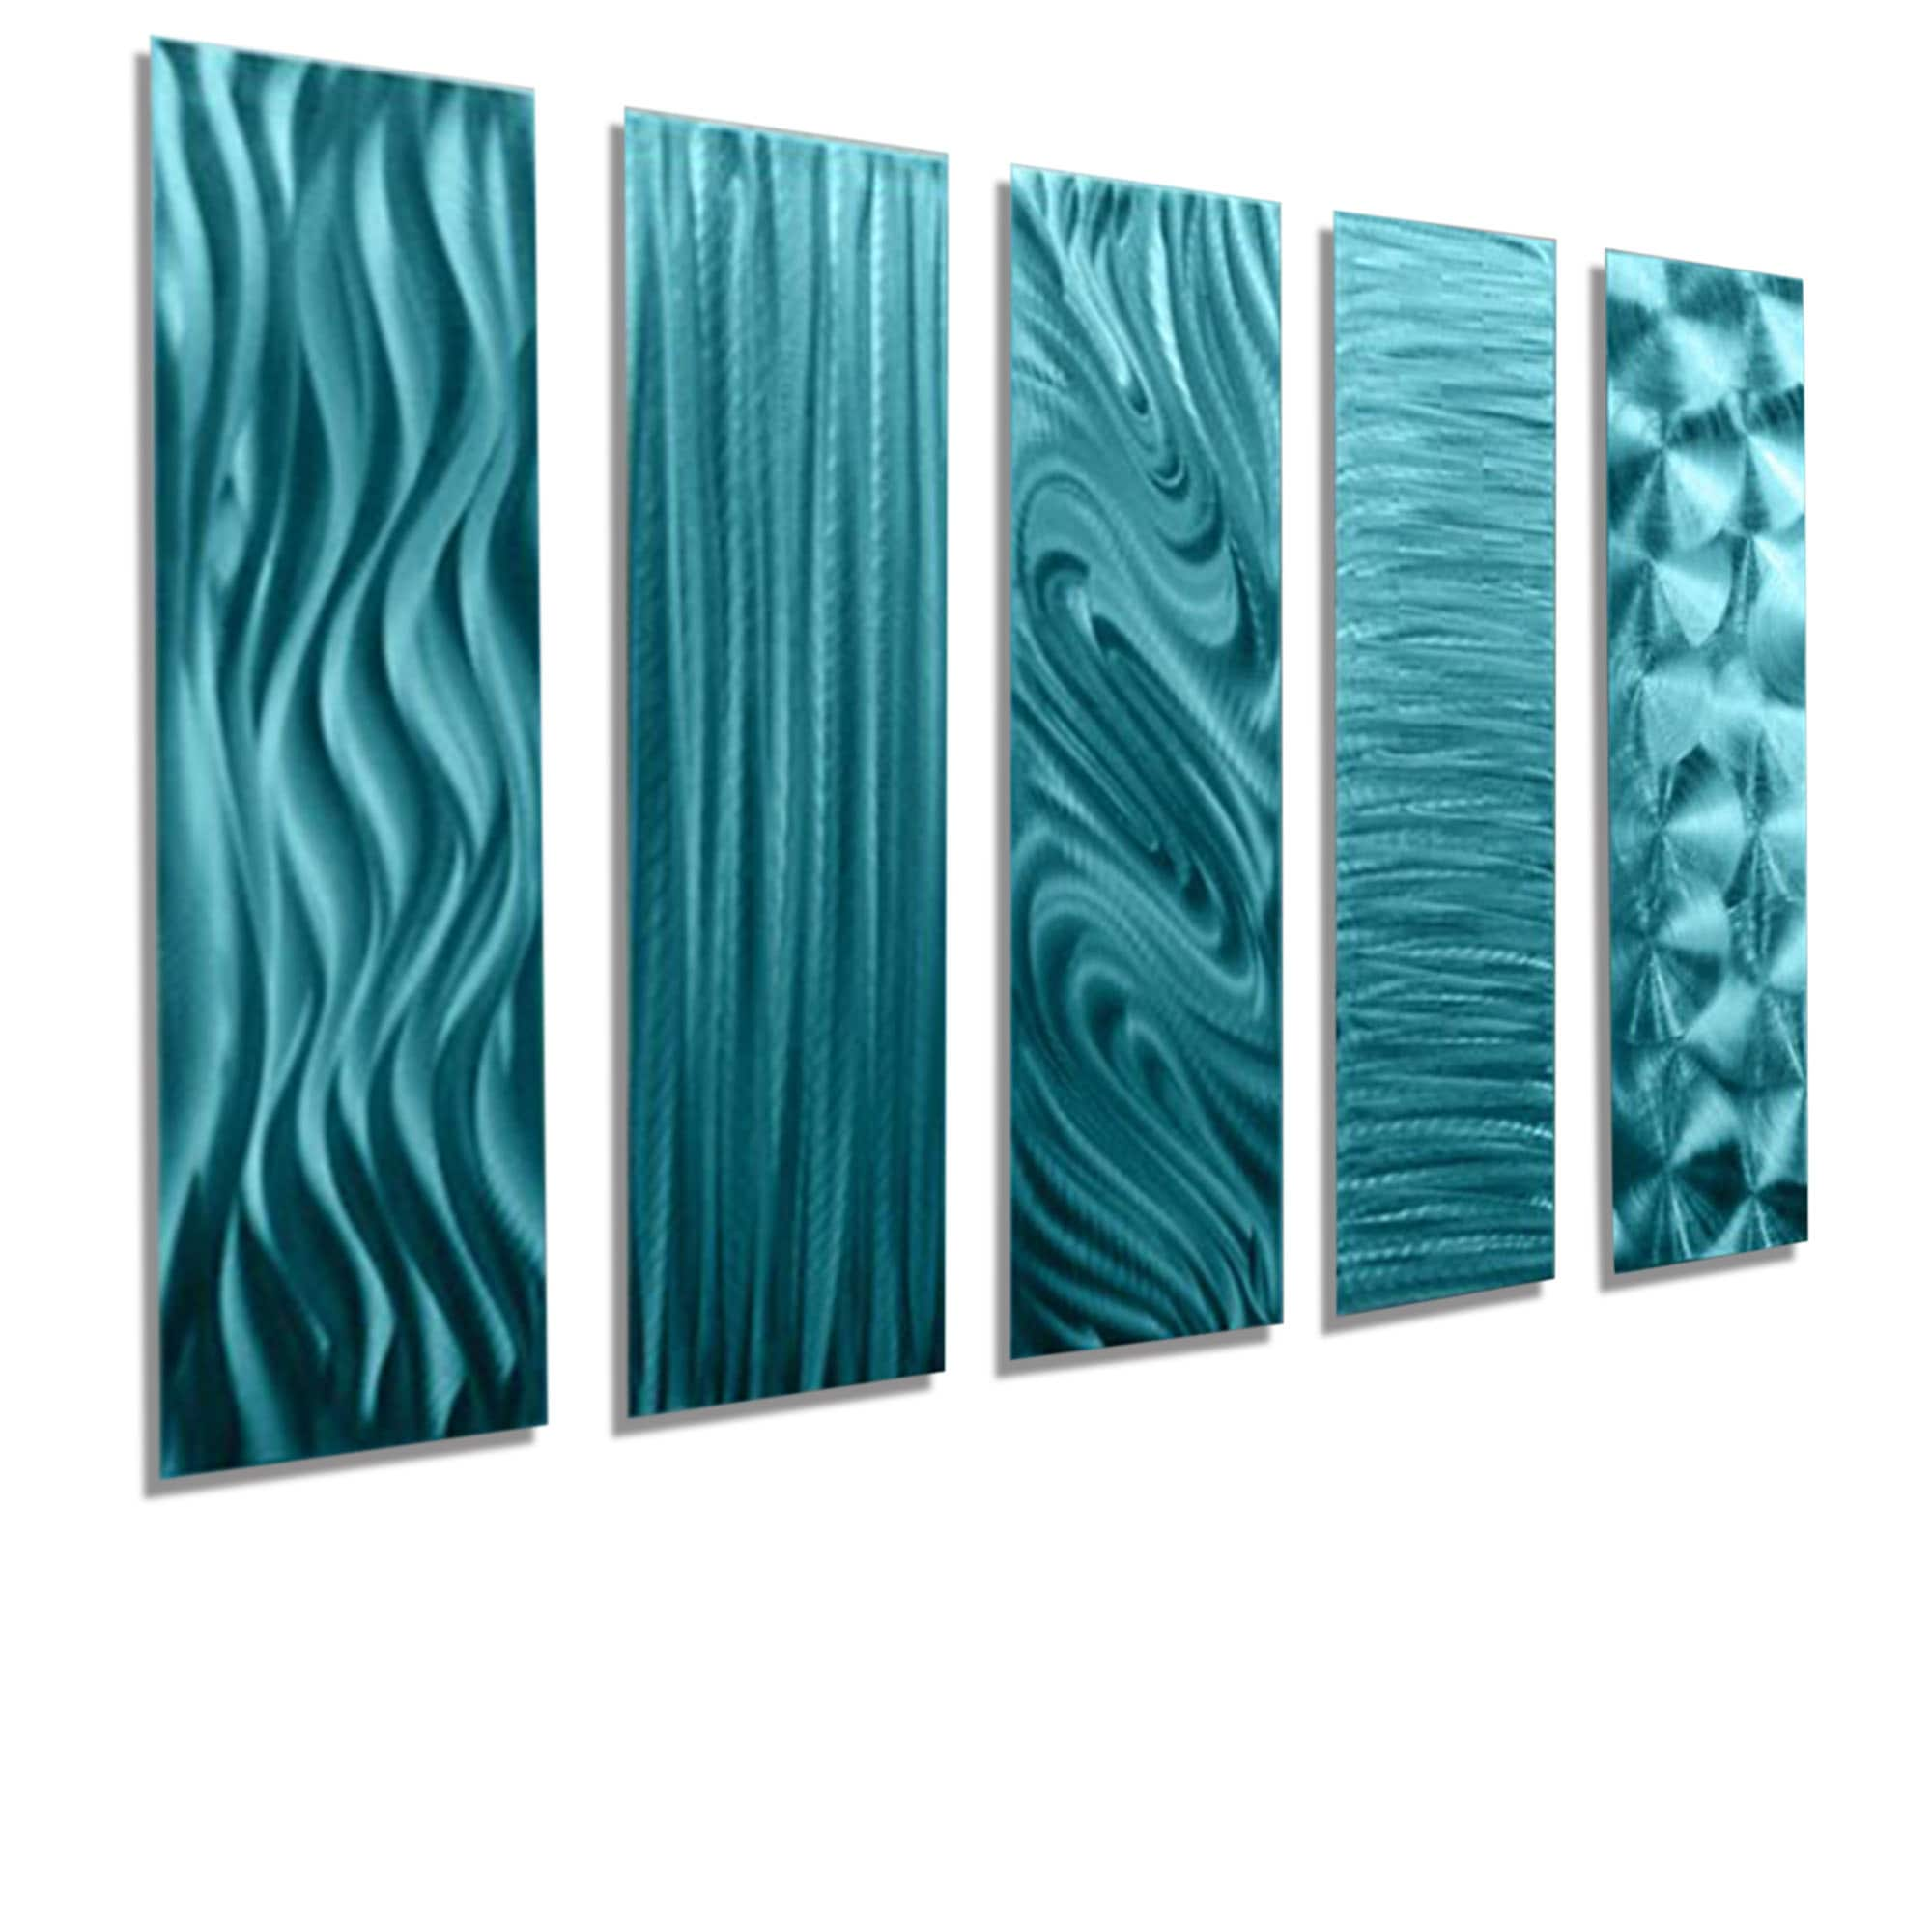 Blue Metal Wall Art Extraordinary Statements2000 Set Of 5 Aqua Blue Metal Wall Art Accentsjon Inspiration Design